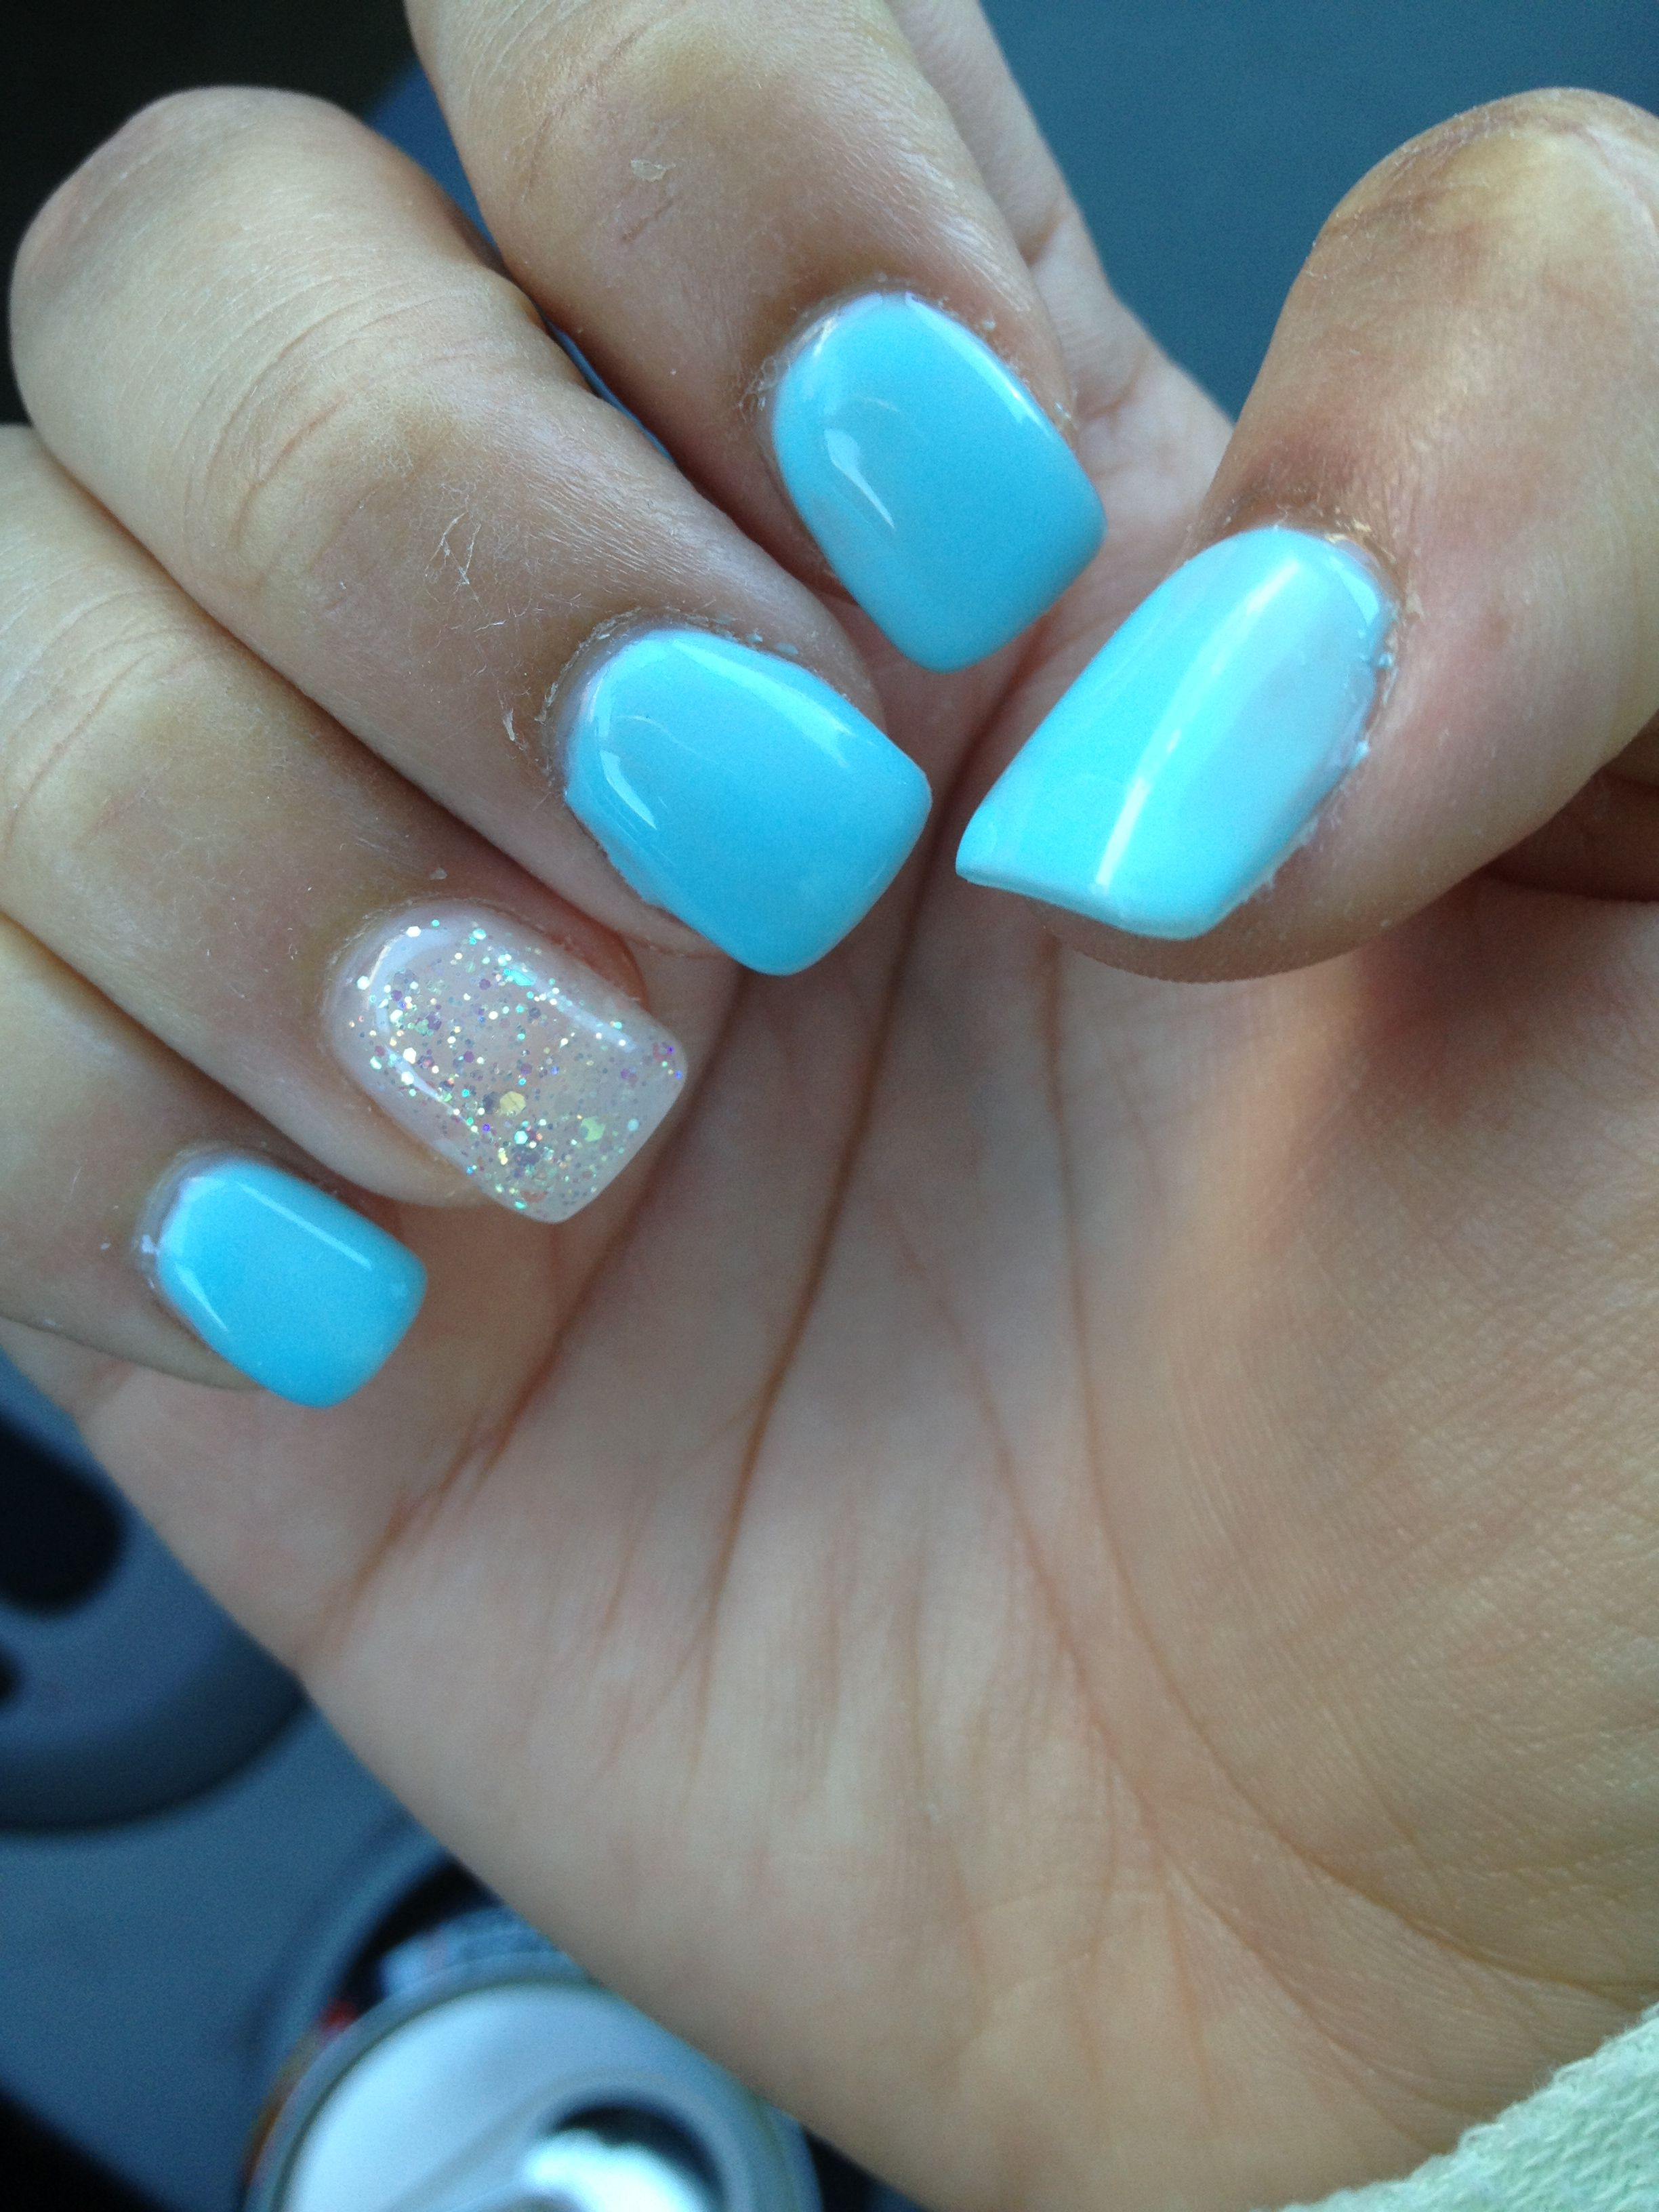 Sky Blue Gel Manicure With A Glittery Accent Blue Gel Nails Acrylic Nails Light Blue Gel